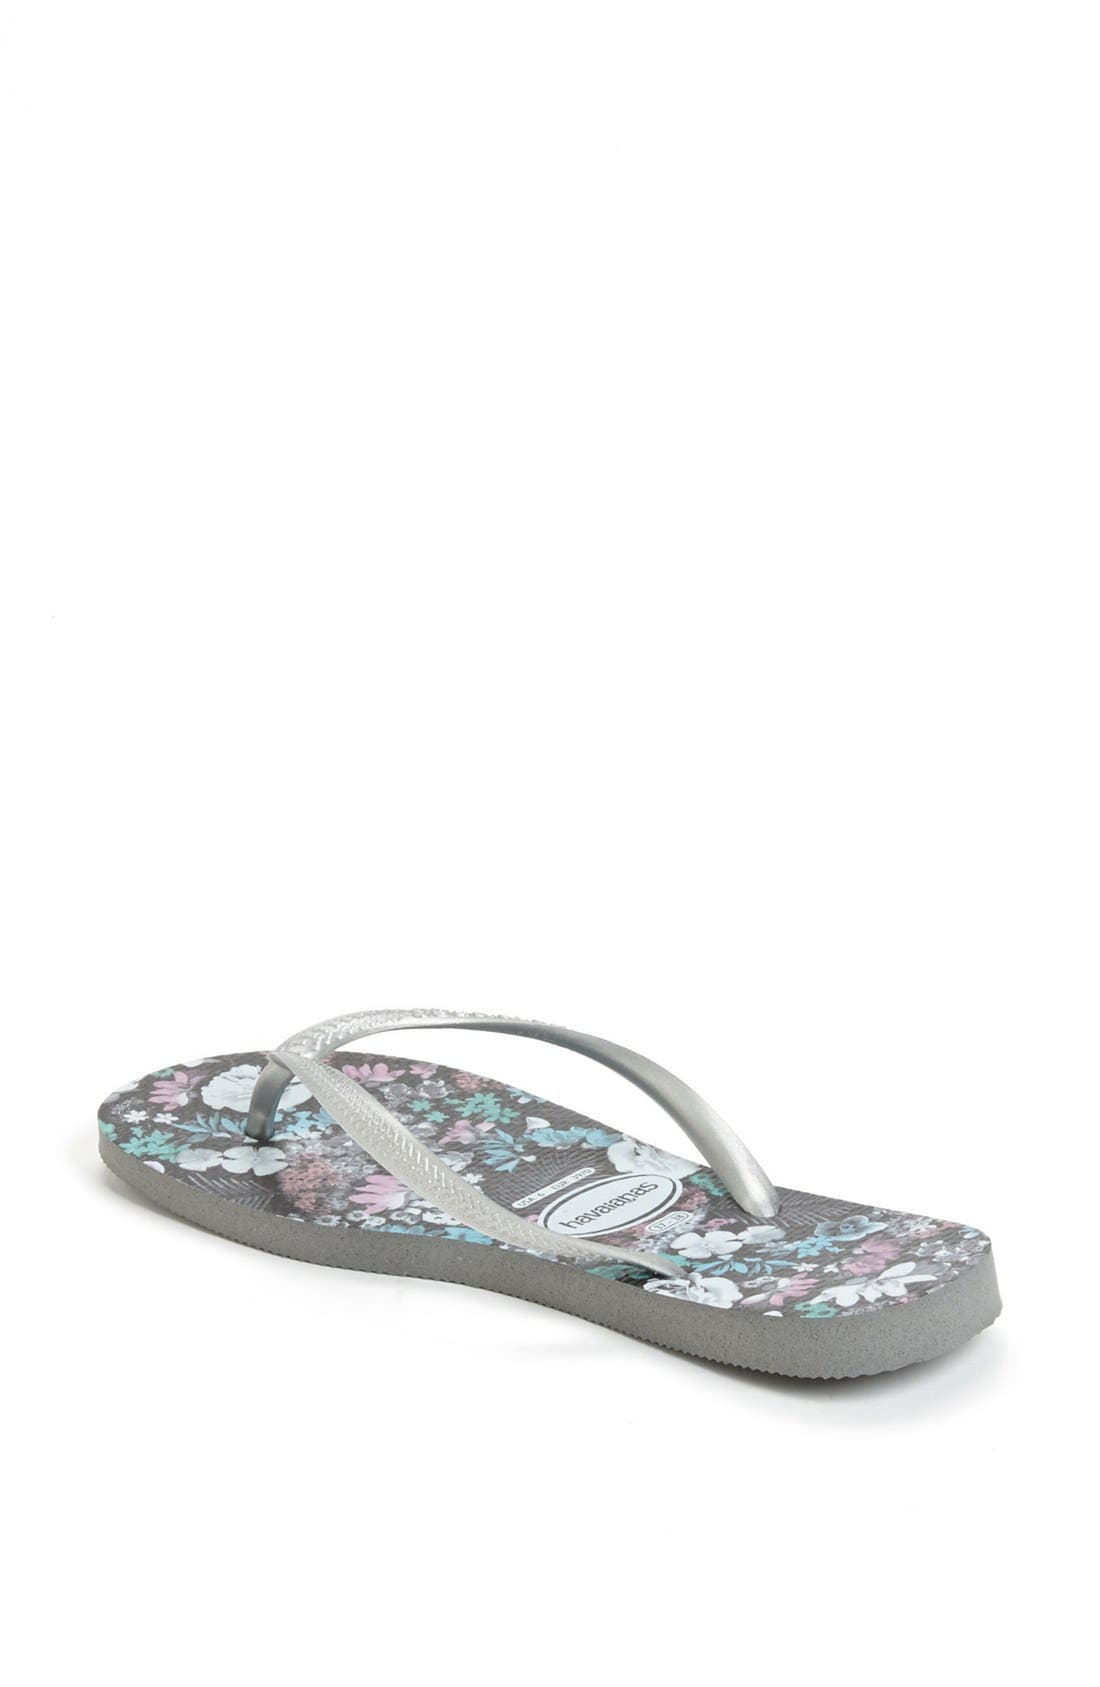 Alternate Image 2  - Havaianas 'Slim Floral' Flip Flop (Women)